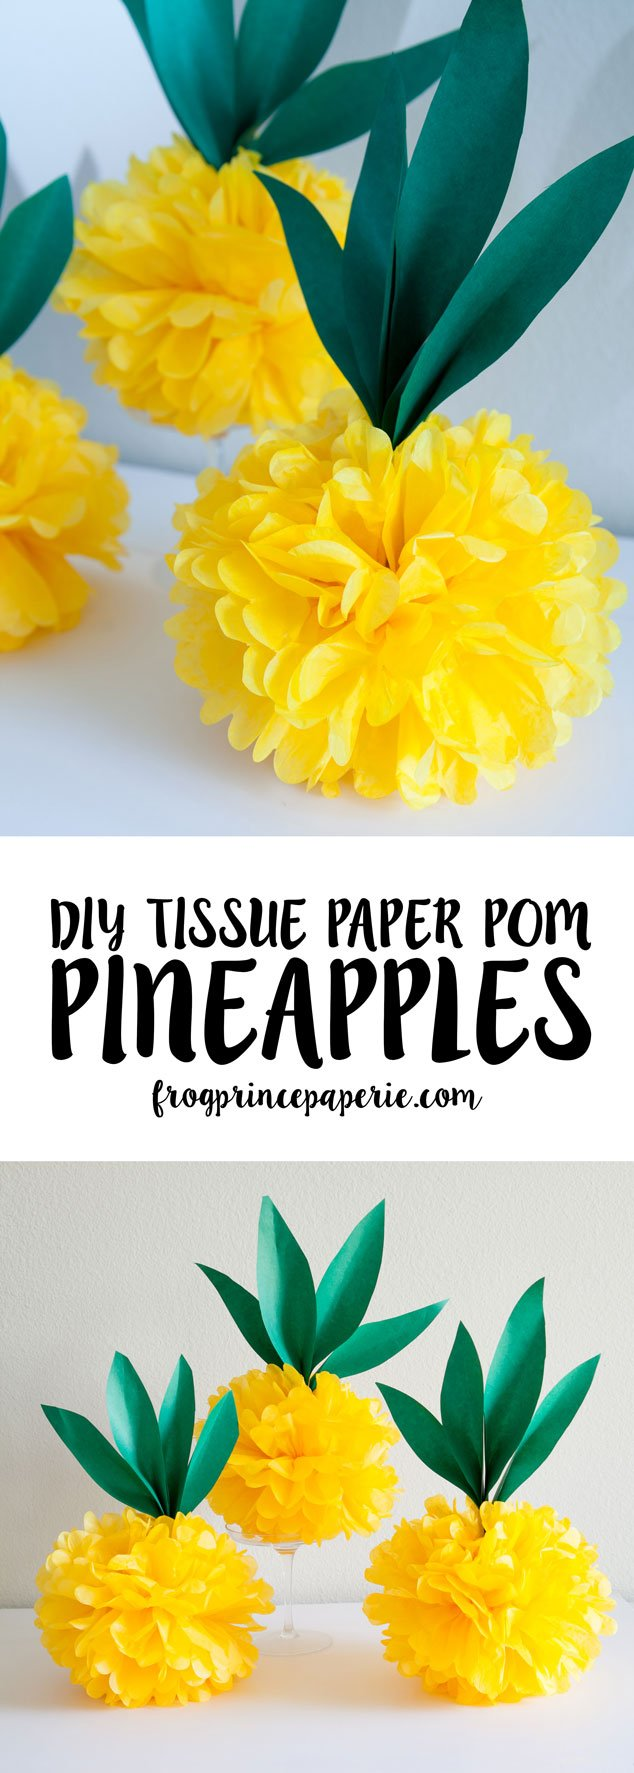 Tissue-Paper-Pom-Pineapples